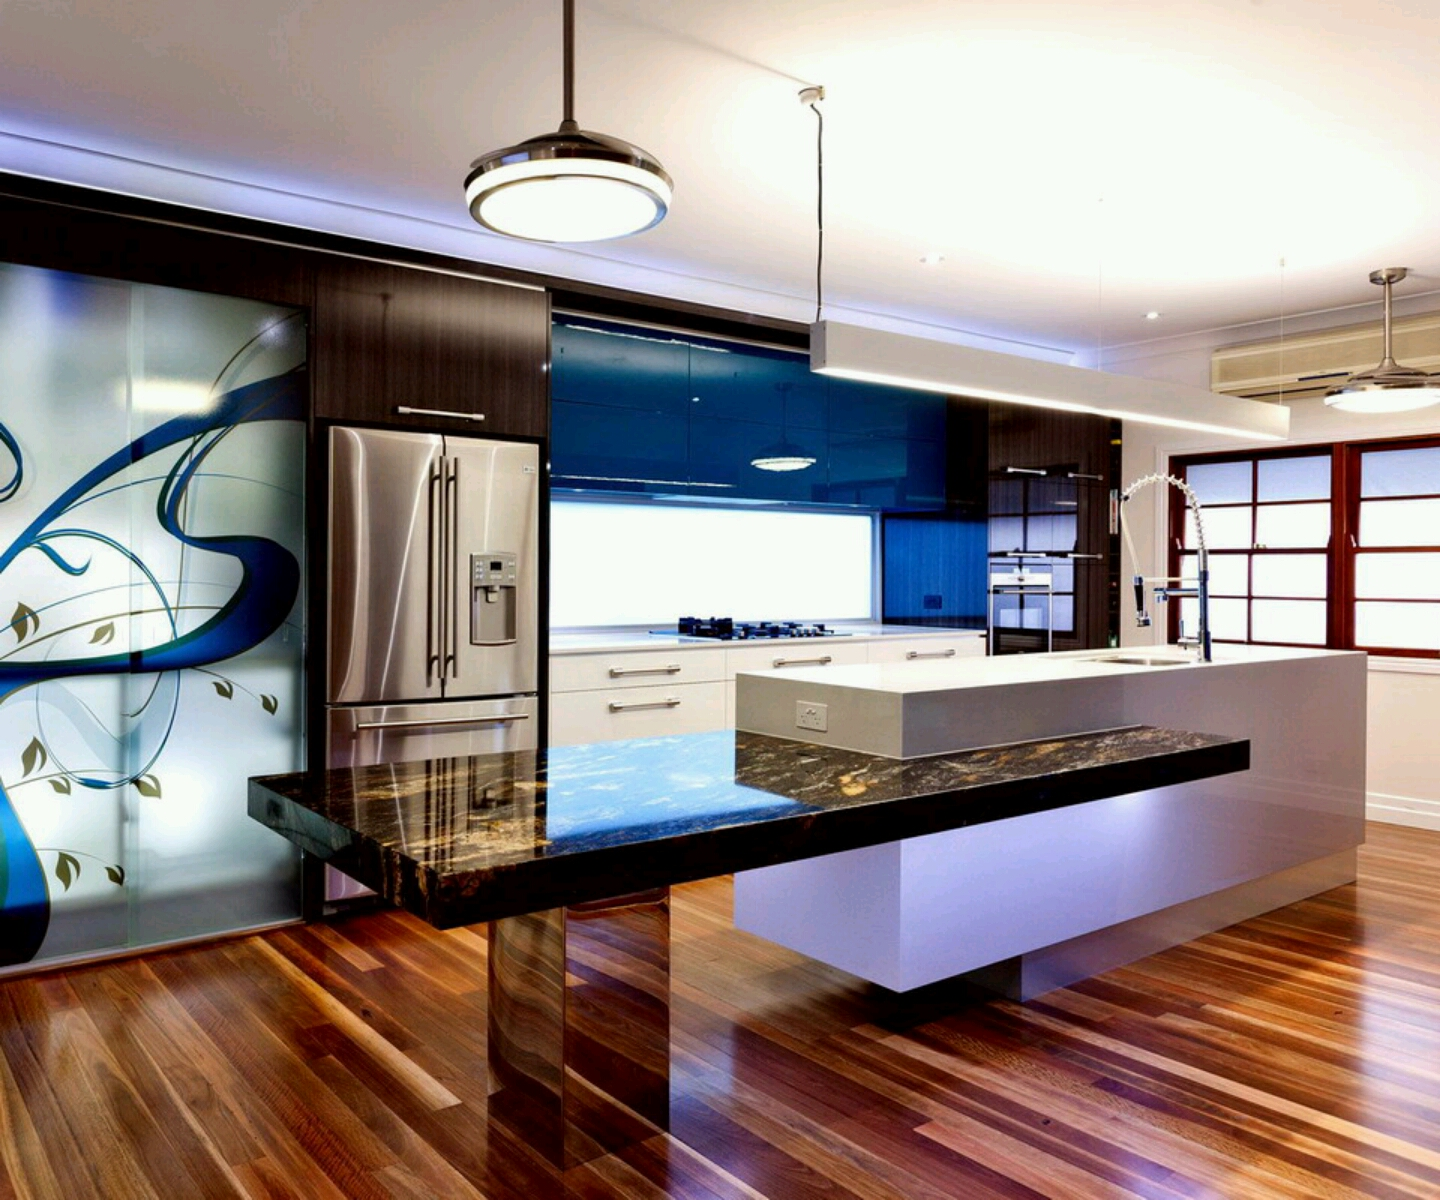 Ultra modern kitchen designs ideas new home designs for Modern kitchen designs gallery